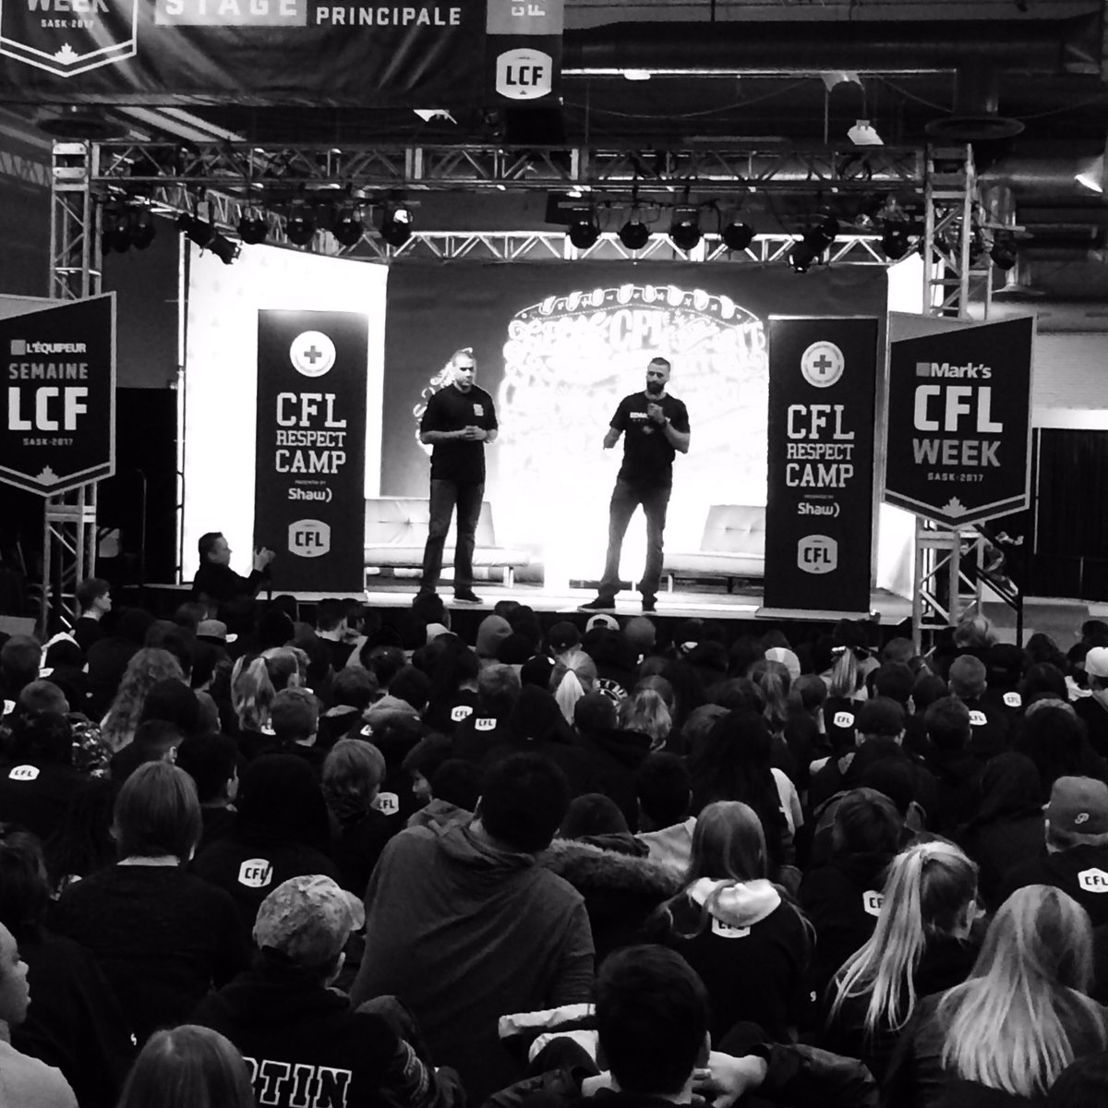 Spencer Moore & Mike Reilly onstage at the CFL Respect Camp with Red Cross presented by Shaw. Photo credit: Red Cross Saskatchewan